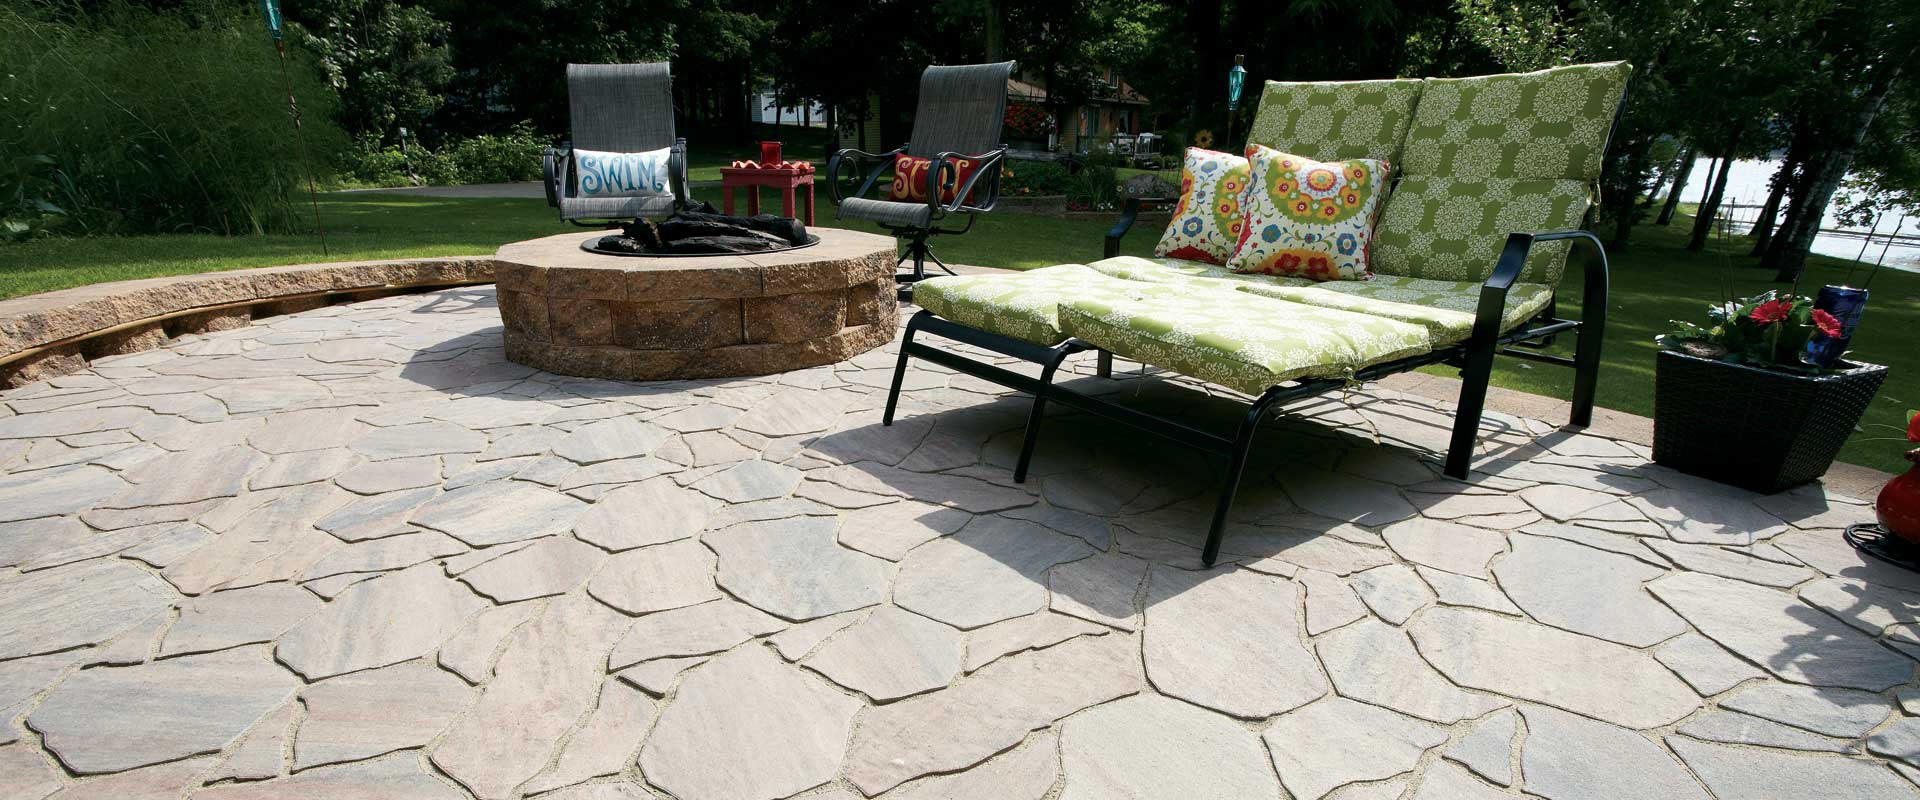 Destination pavers Patio products